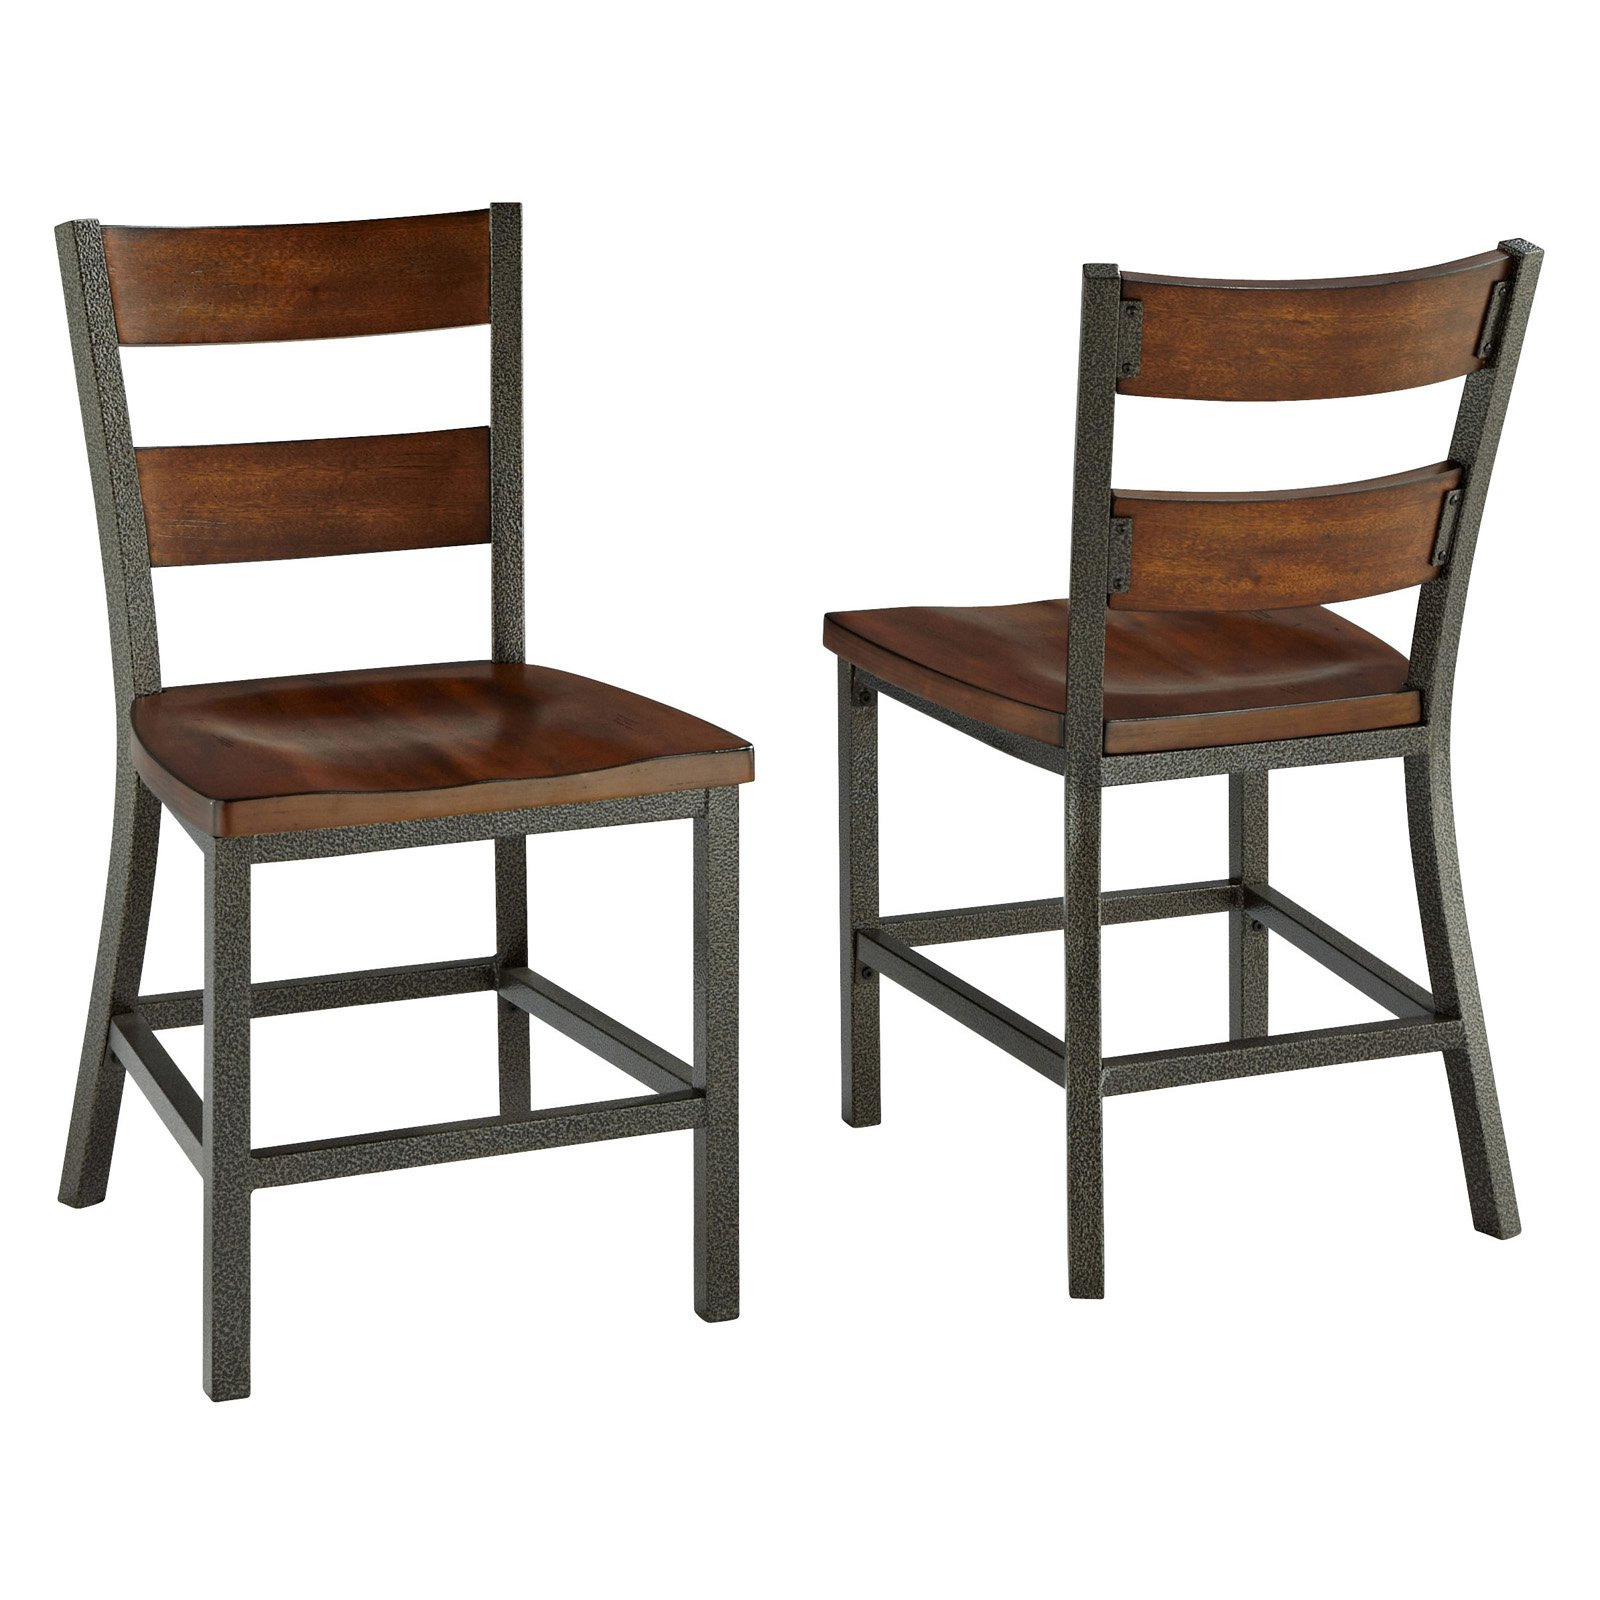 Wood Steel Dining Room Chairs: Home Styles Cabin Creek 2-Piece Dining Chair Set, Chestnut